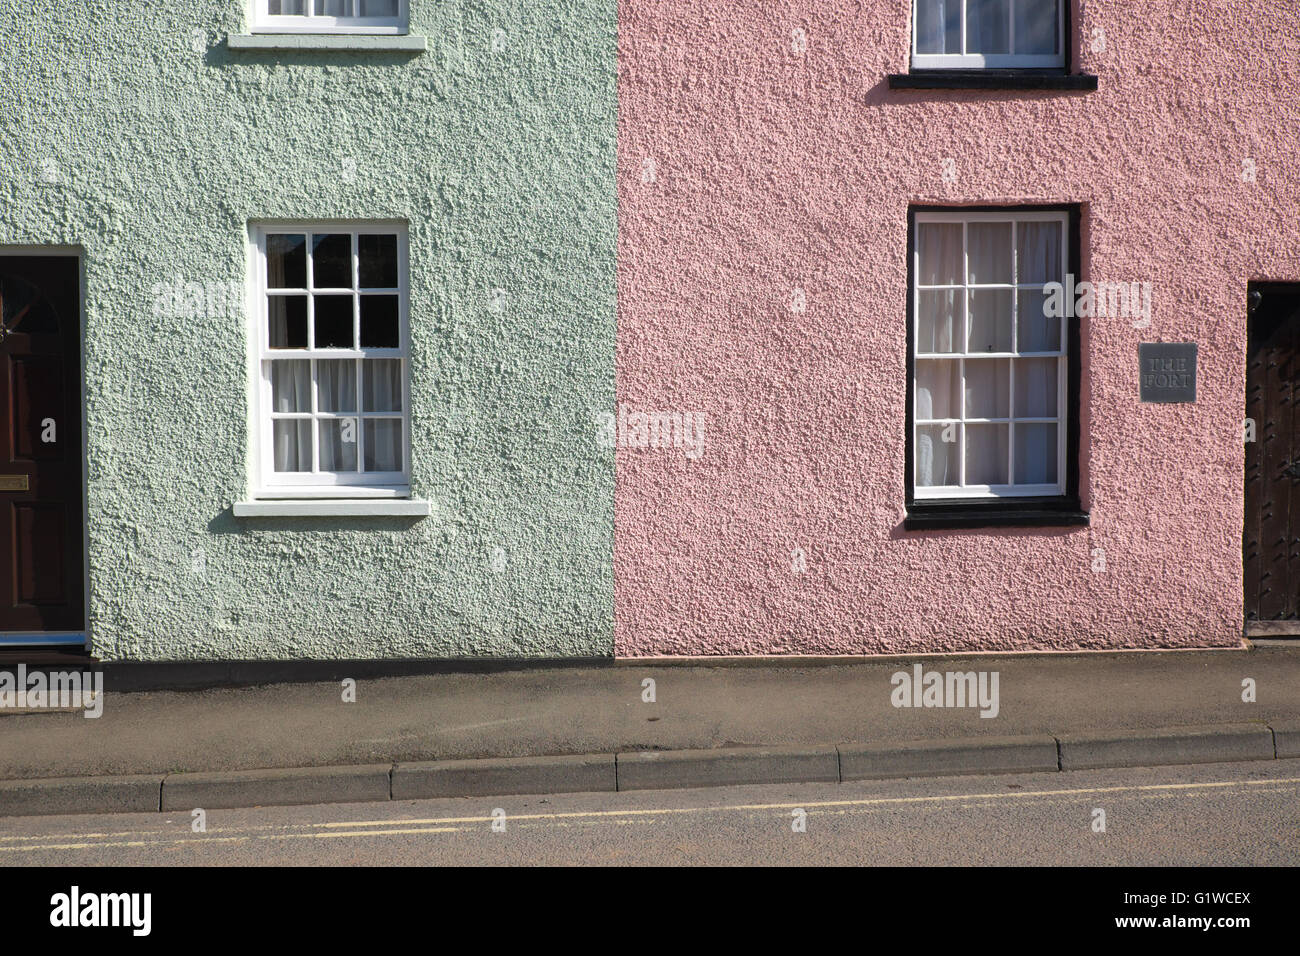 Pink Painted House Stock Photos & Pink Painted House Stock Images ...